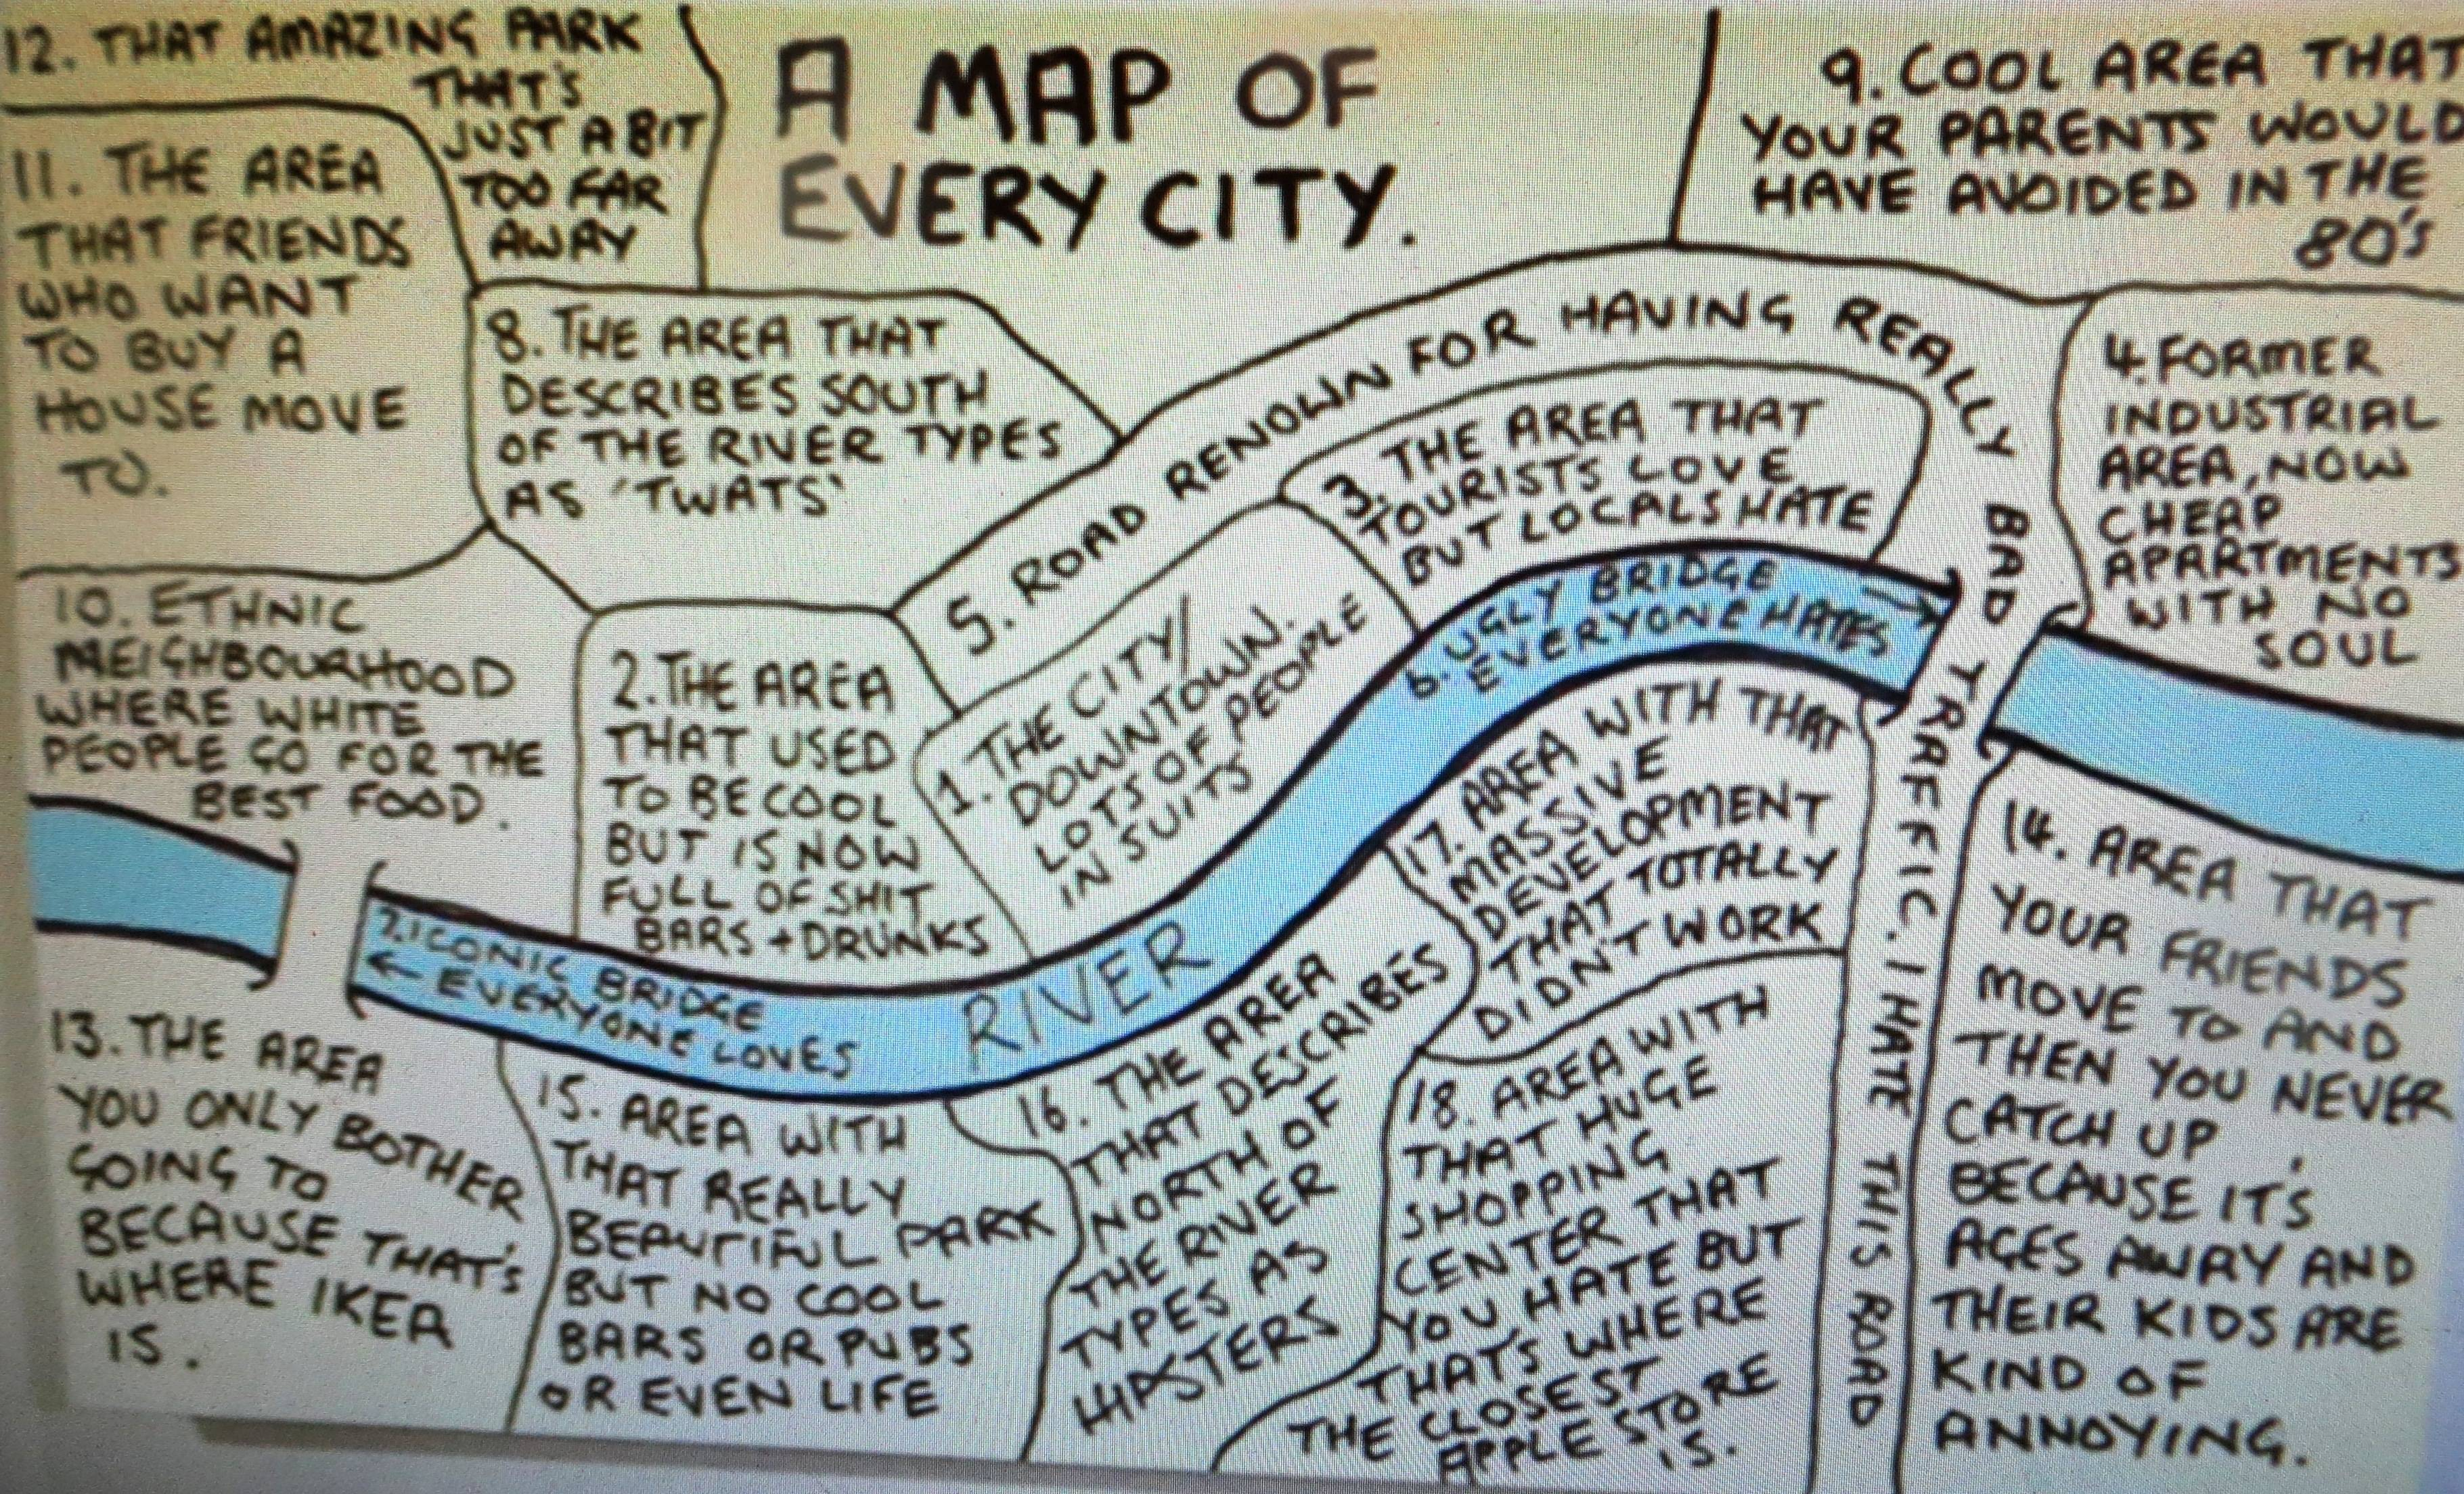 a map of every city 002